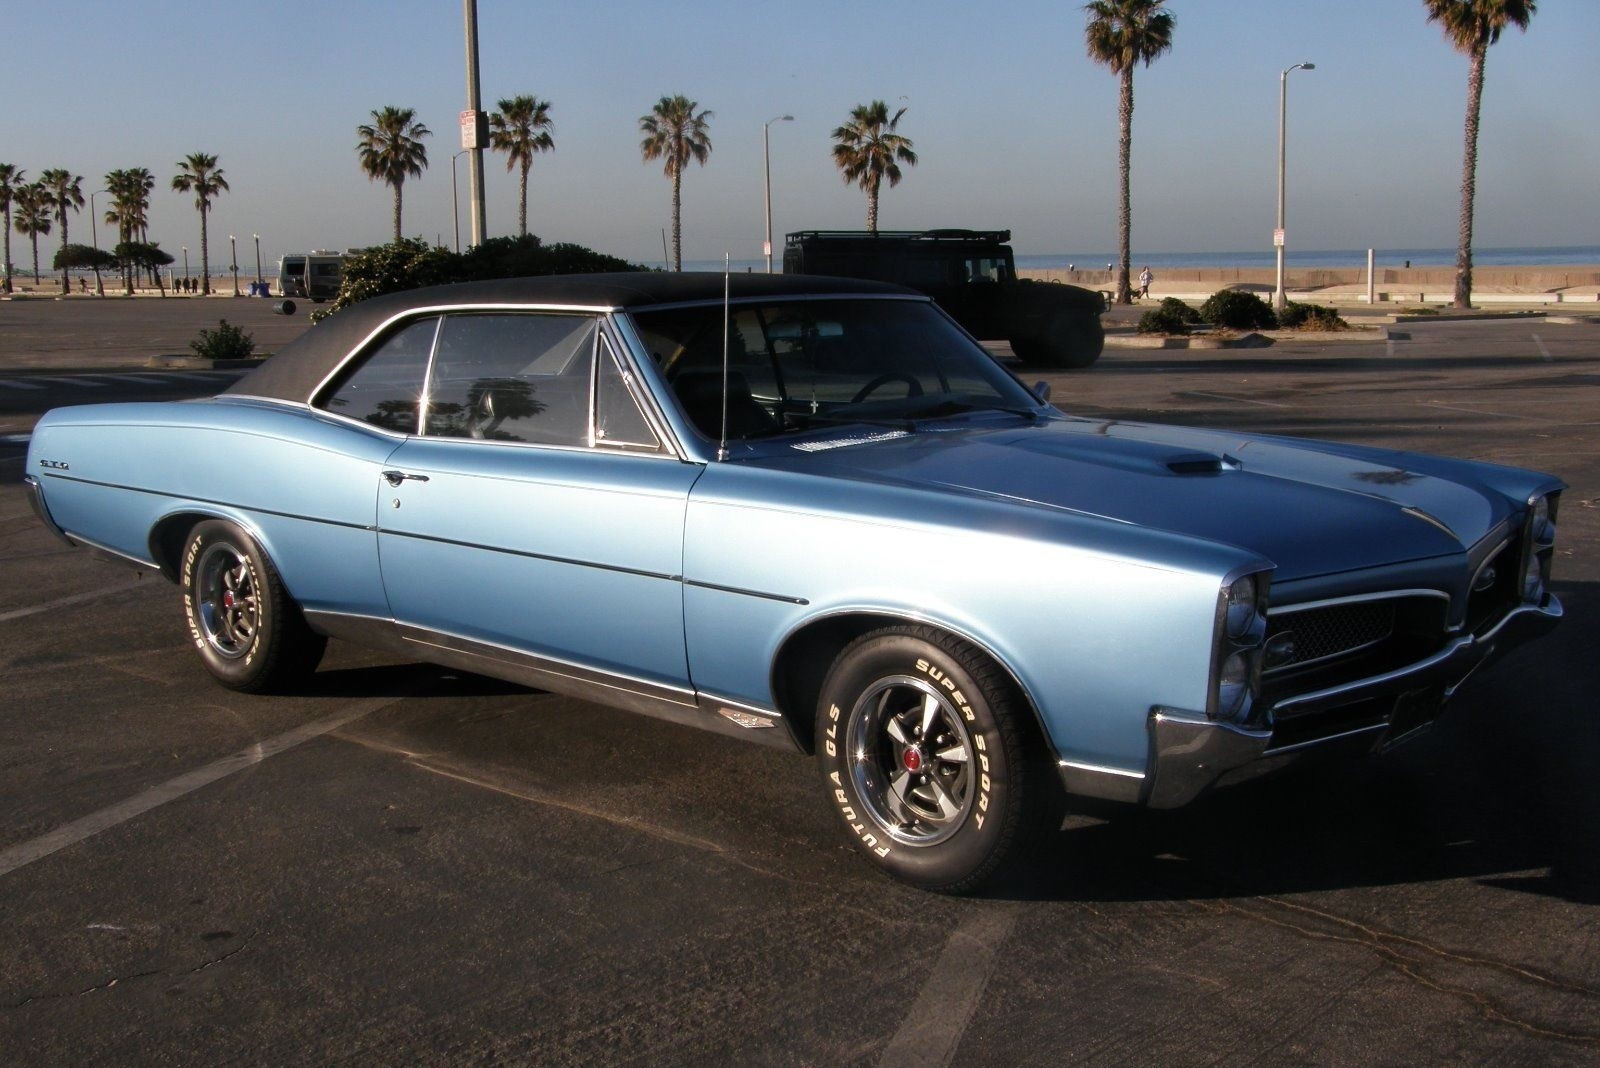 Pictures Tell The Story 1967 Pontiac GTO